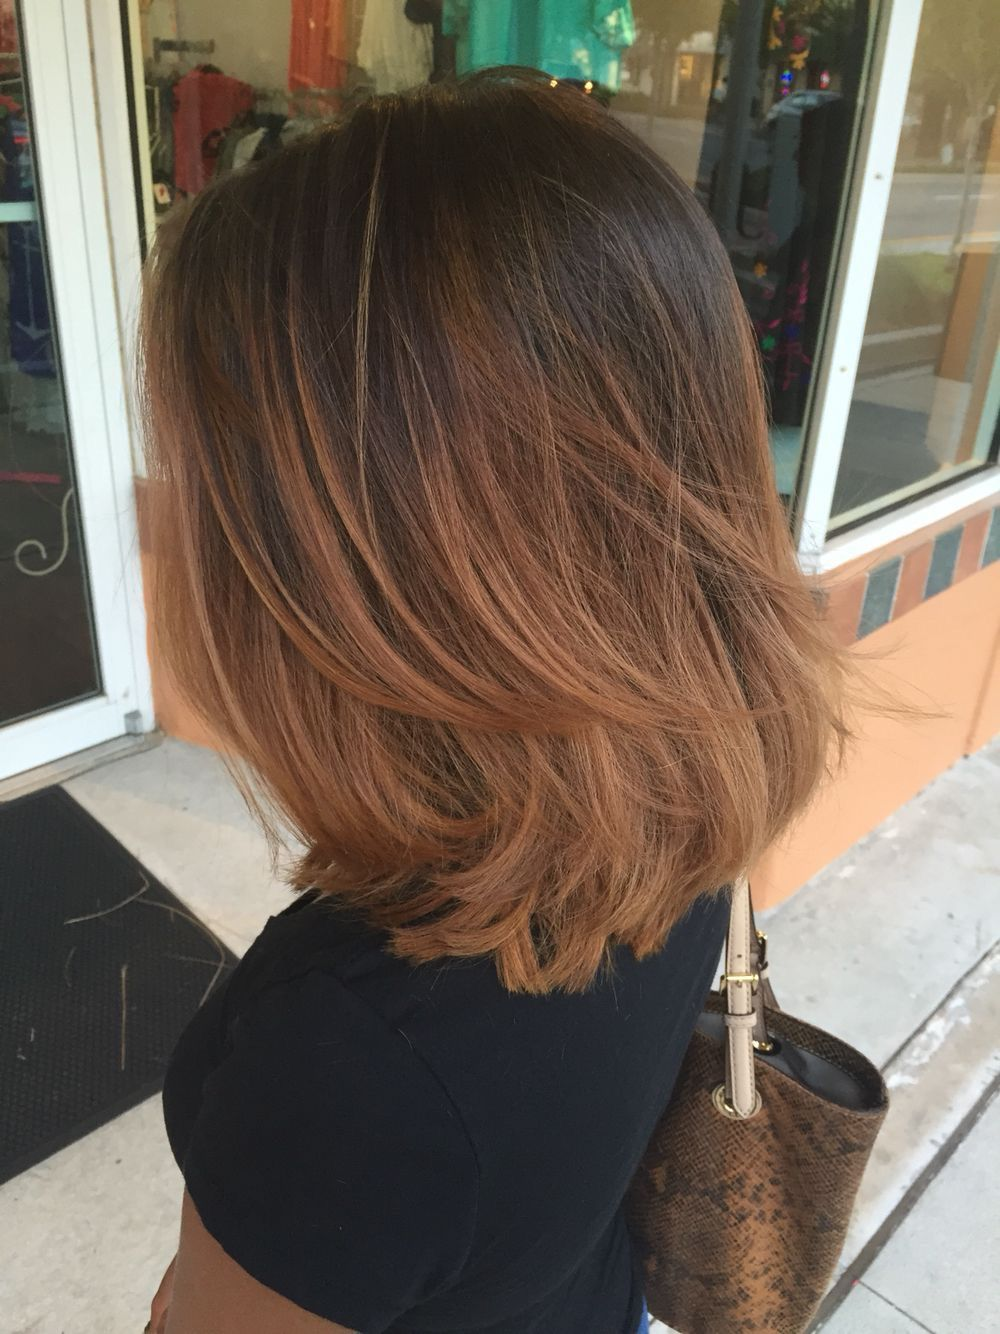 How To Style Your Hair Color And Cutcan You Style Your Hair Or Do Prefer To Go See A